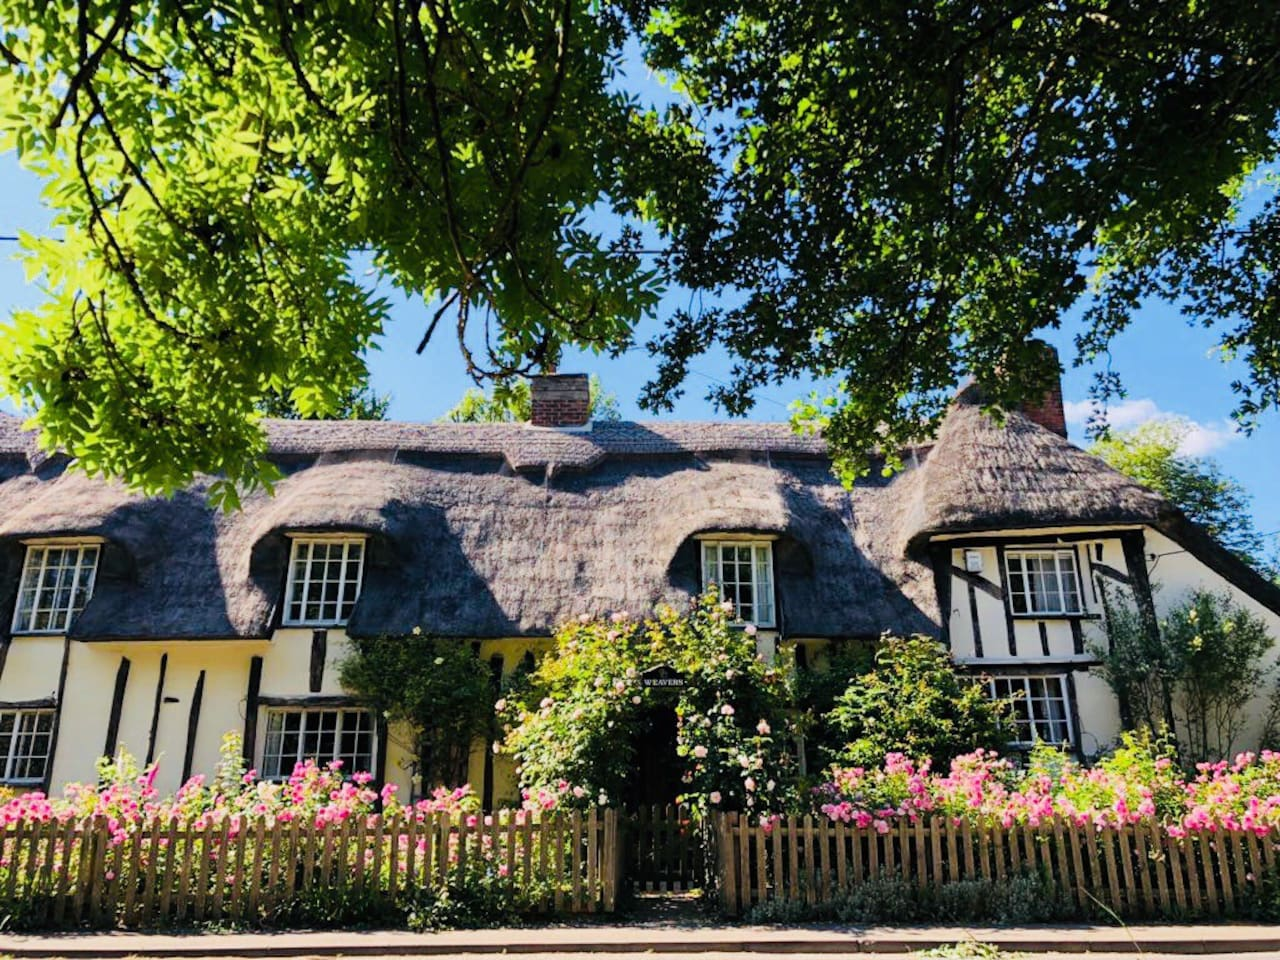 Our beautiful grade II listed chocolate box cottage thatched cottage. Set in the stunning Suffolk countryside overlooking fields, this is a perfect country escape. We welcome you to your peaceful home from home bursting with charm and character.